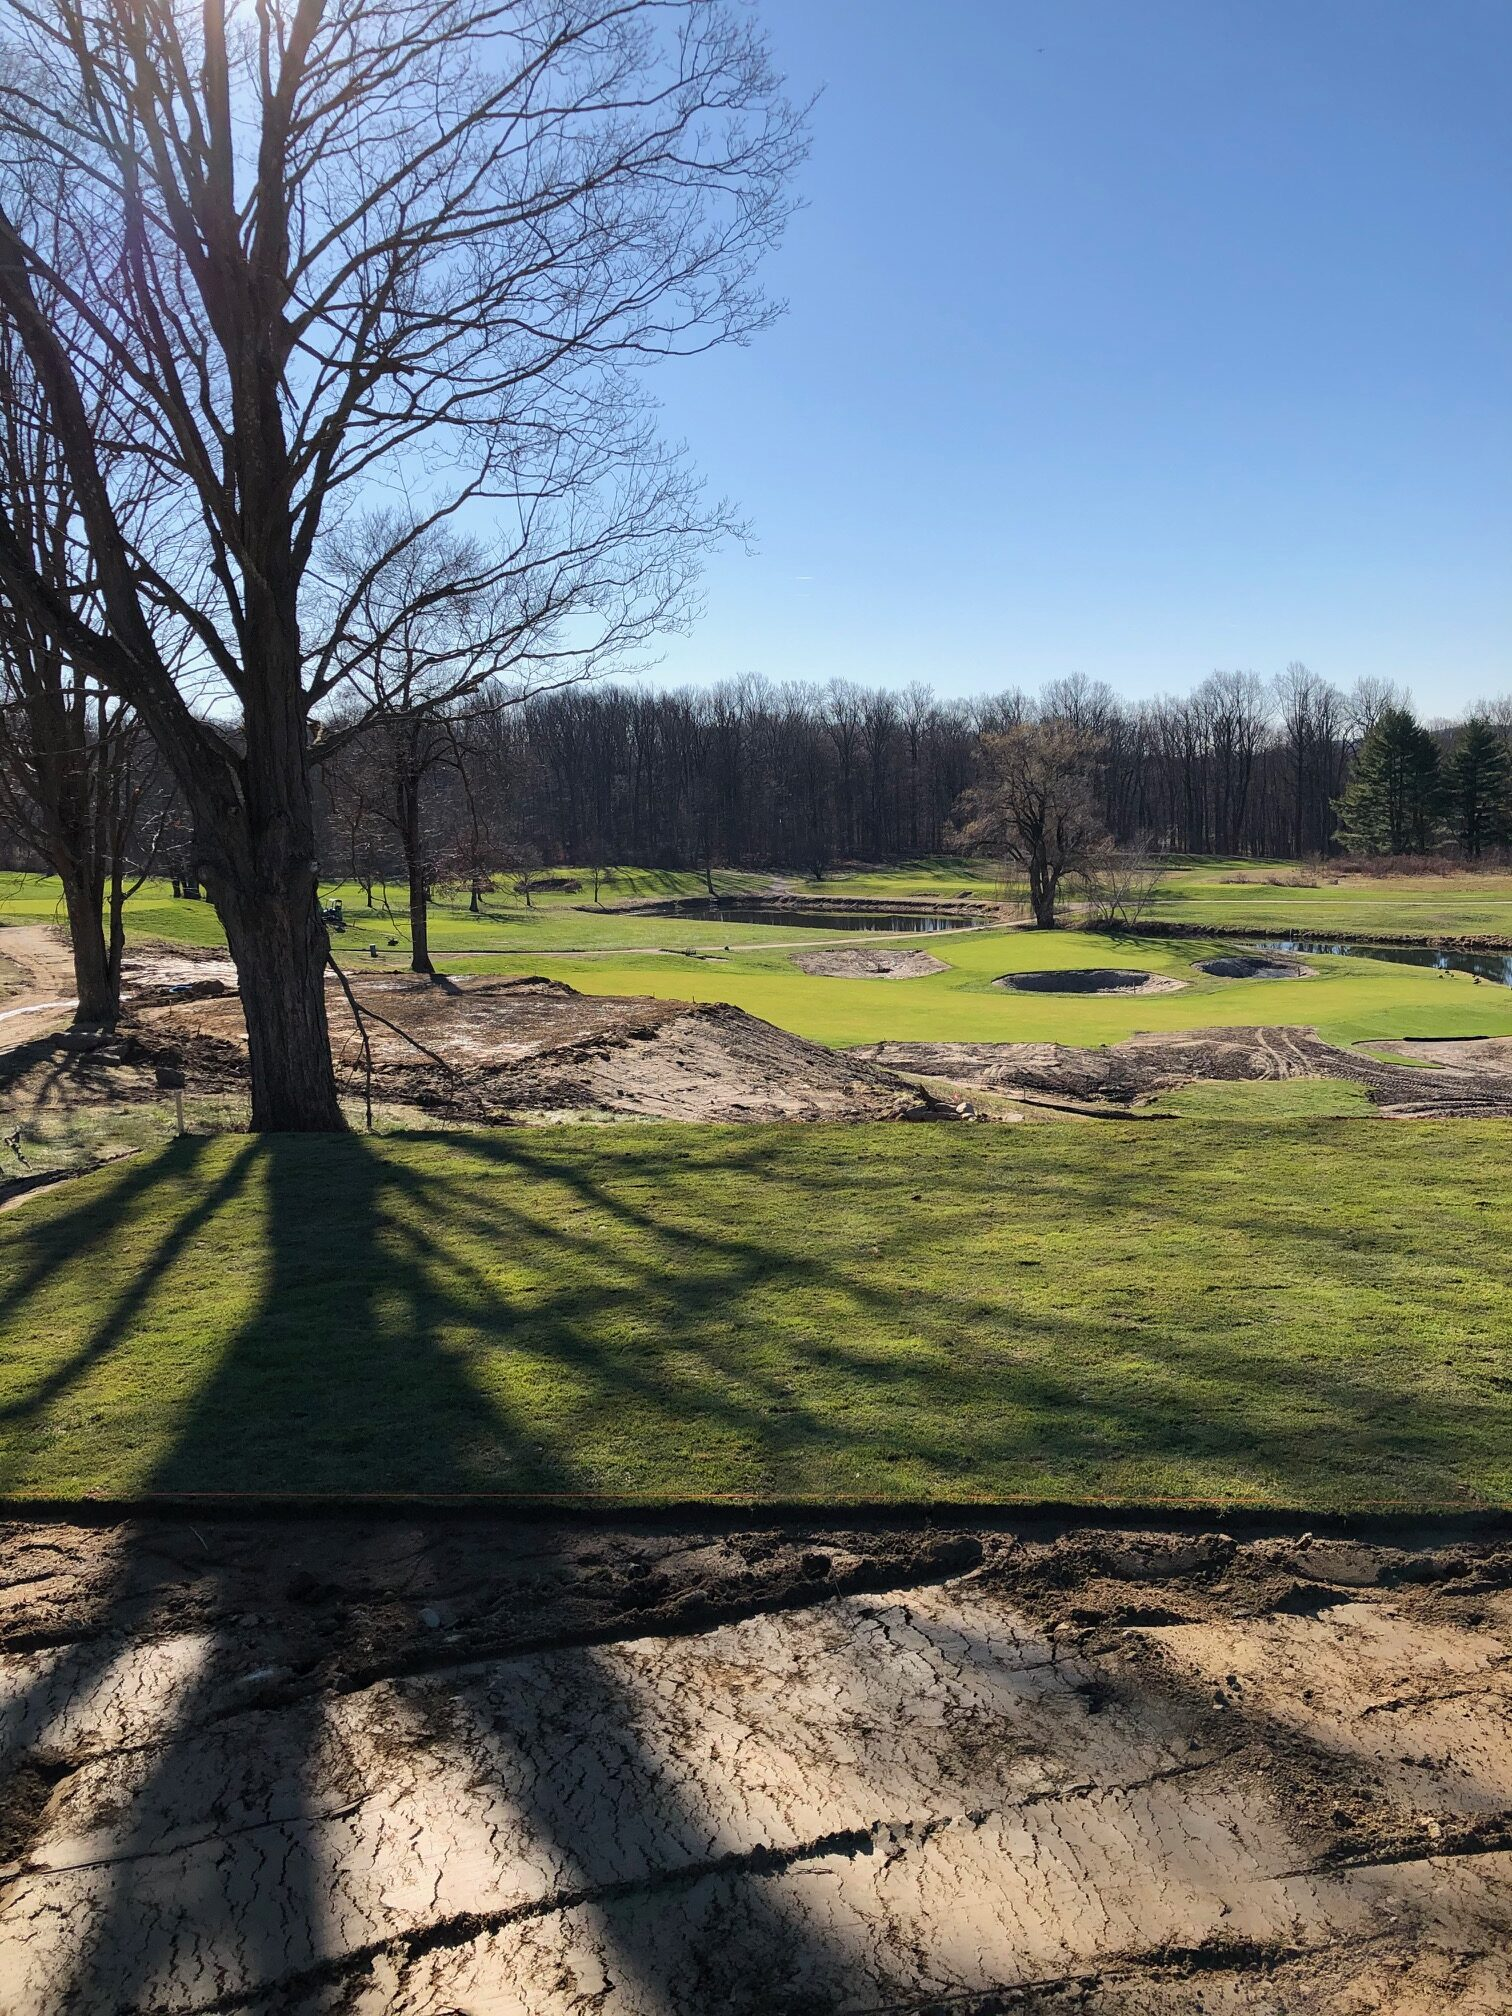 back tee box 17th hole construction at The Summit Club at Armonk